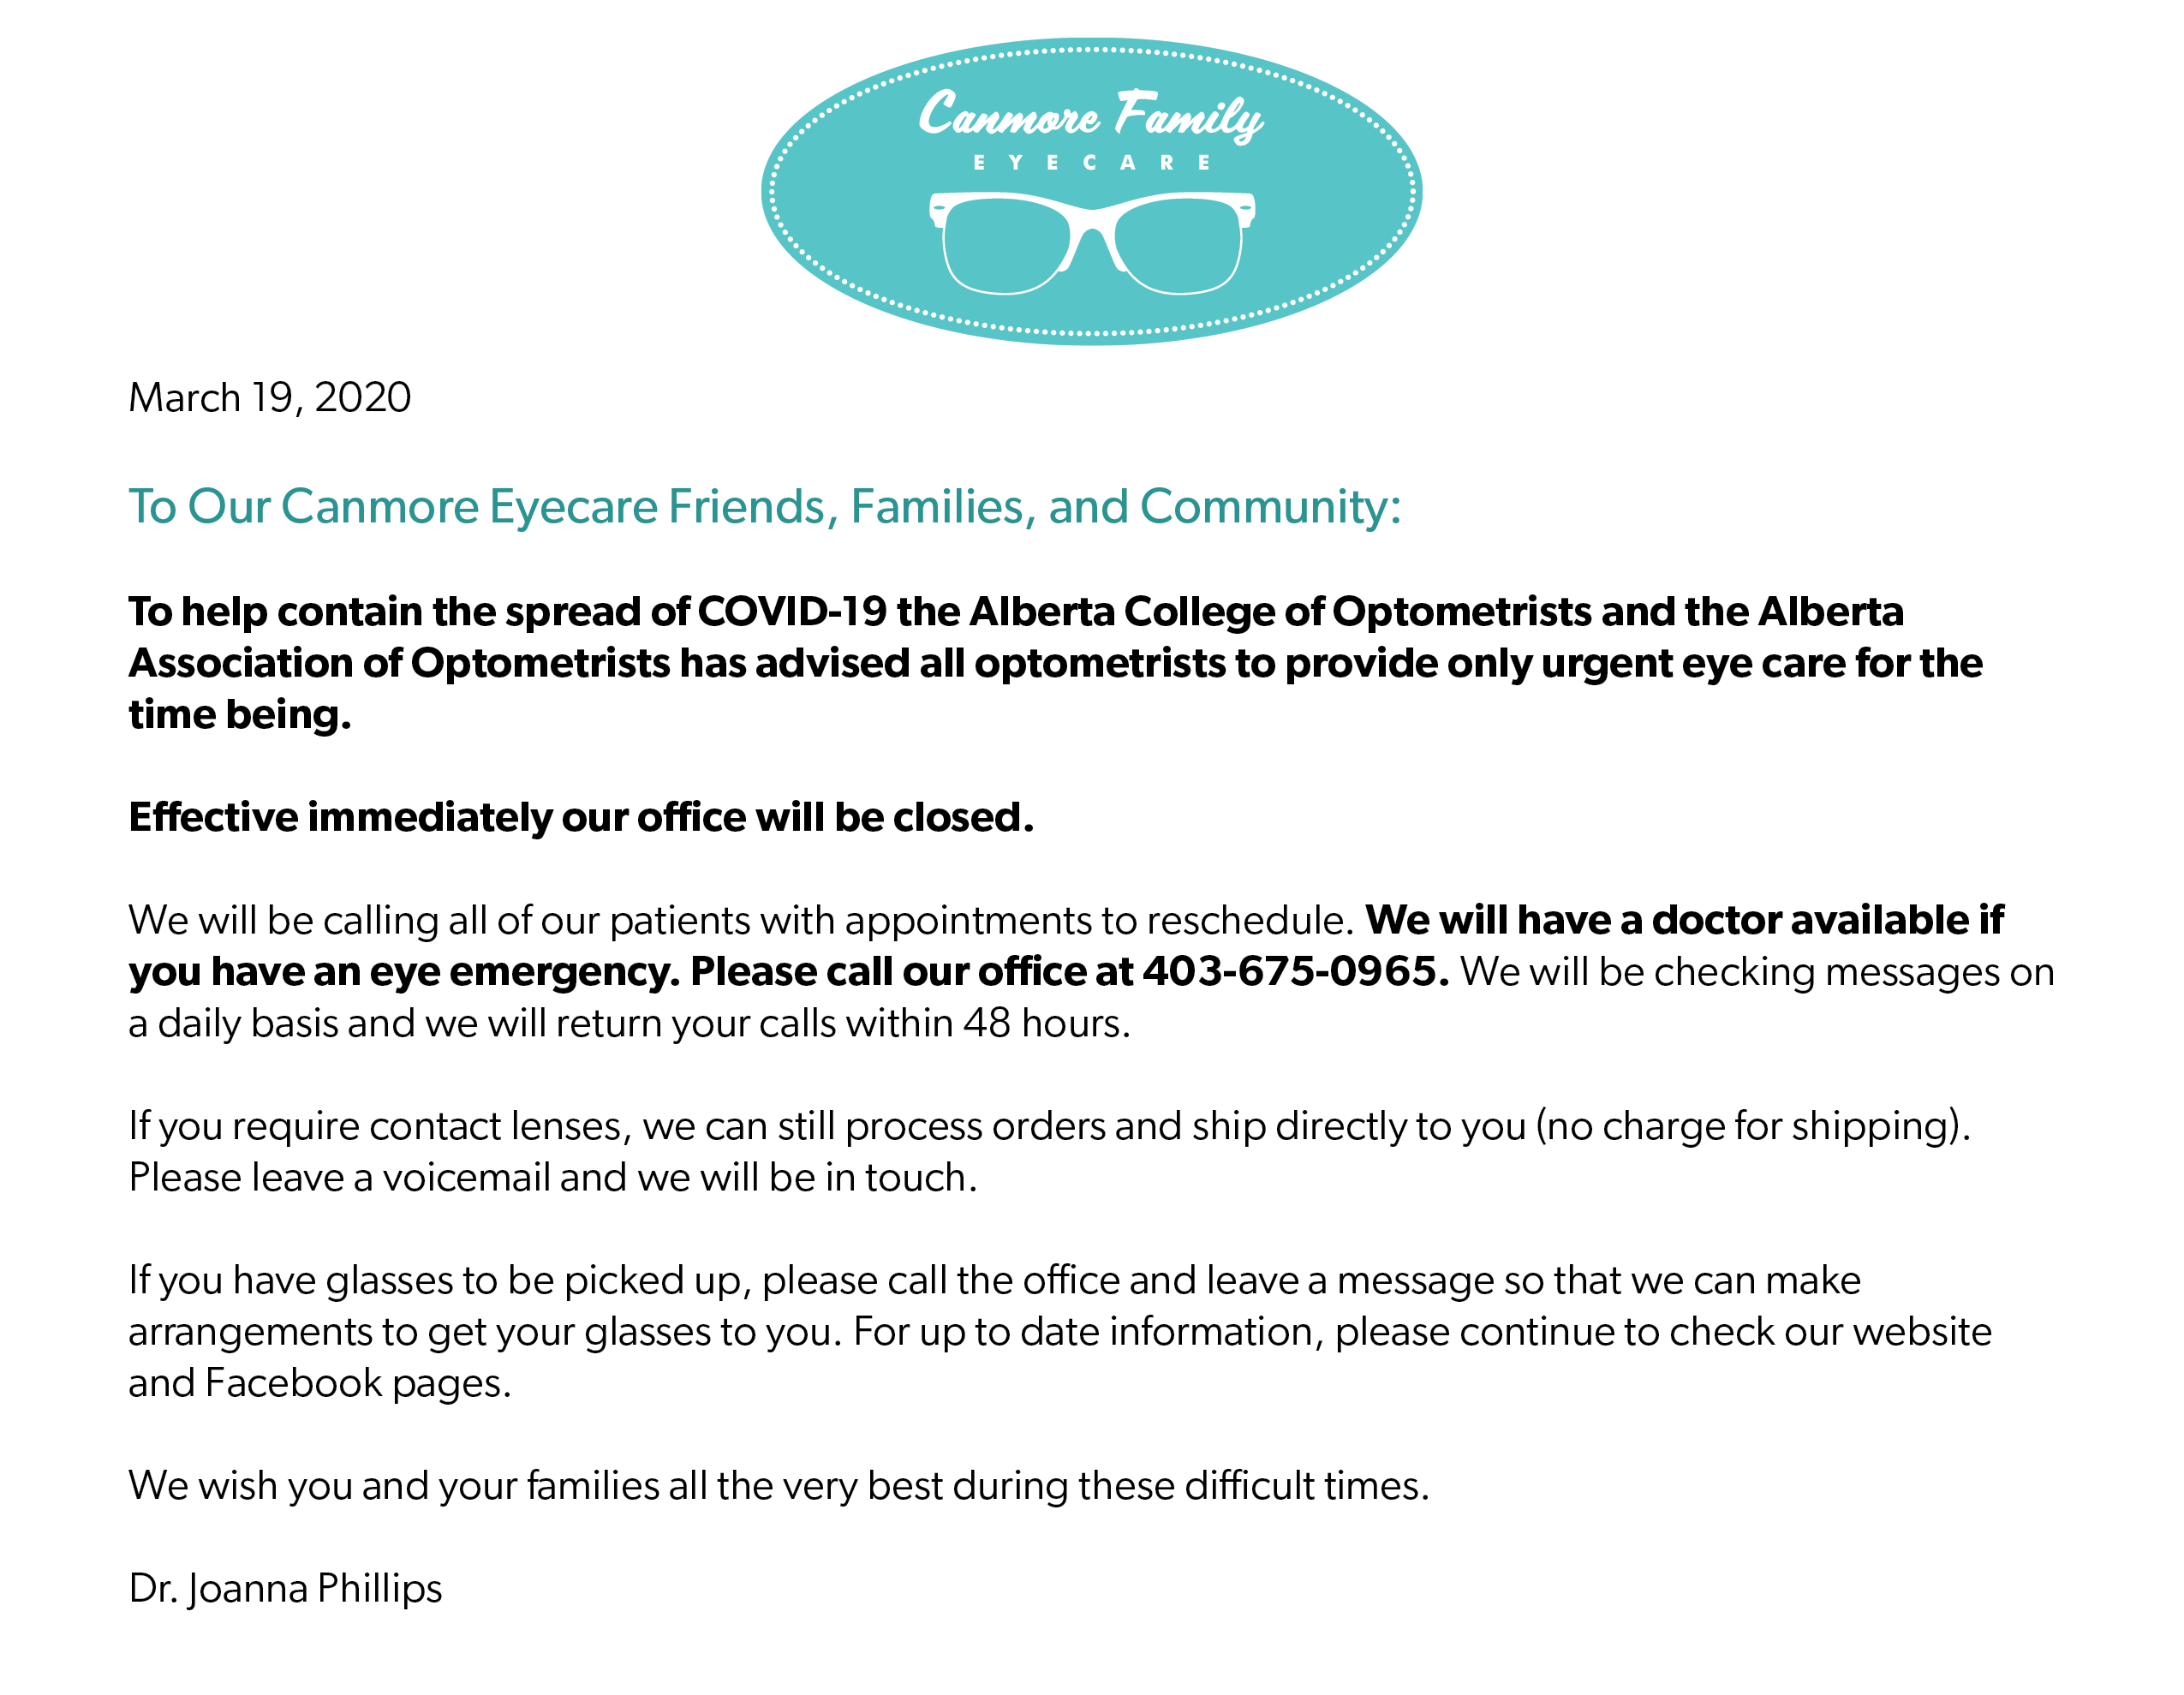 Canmore Family Eyecare COVID-19 update